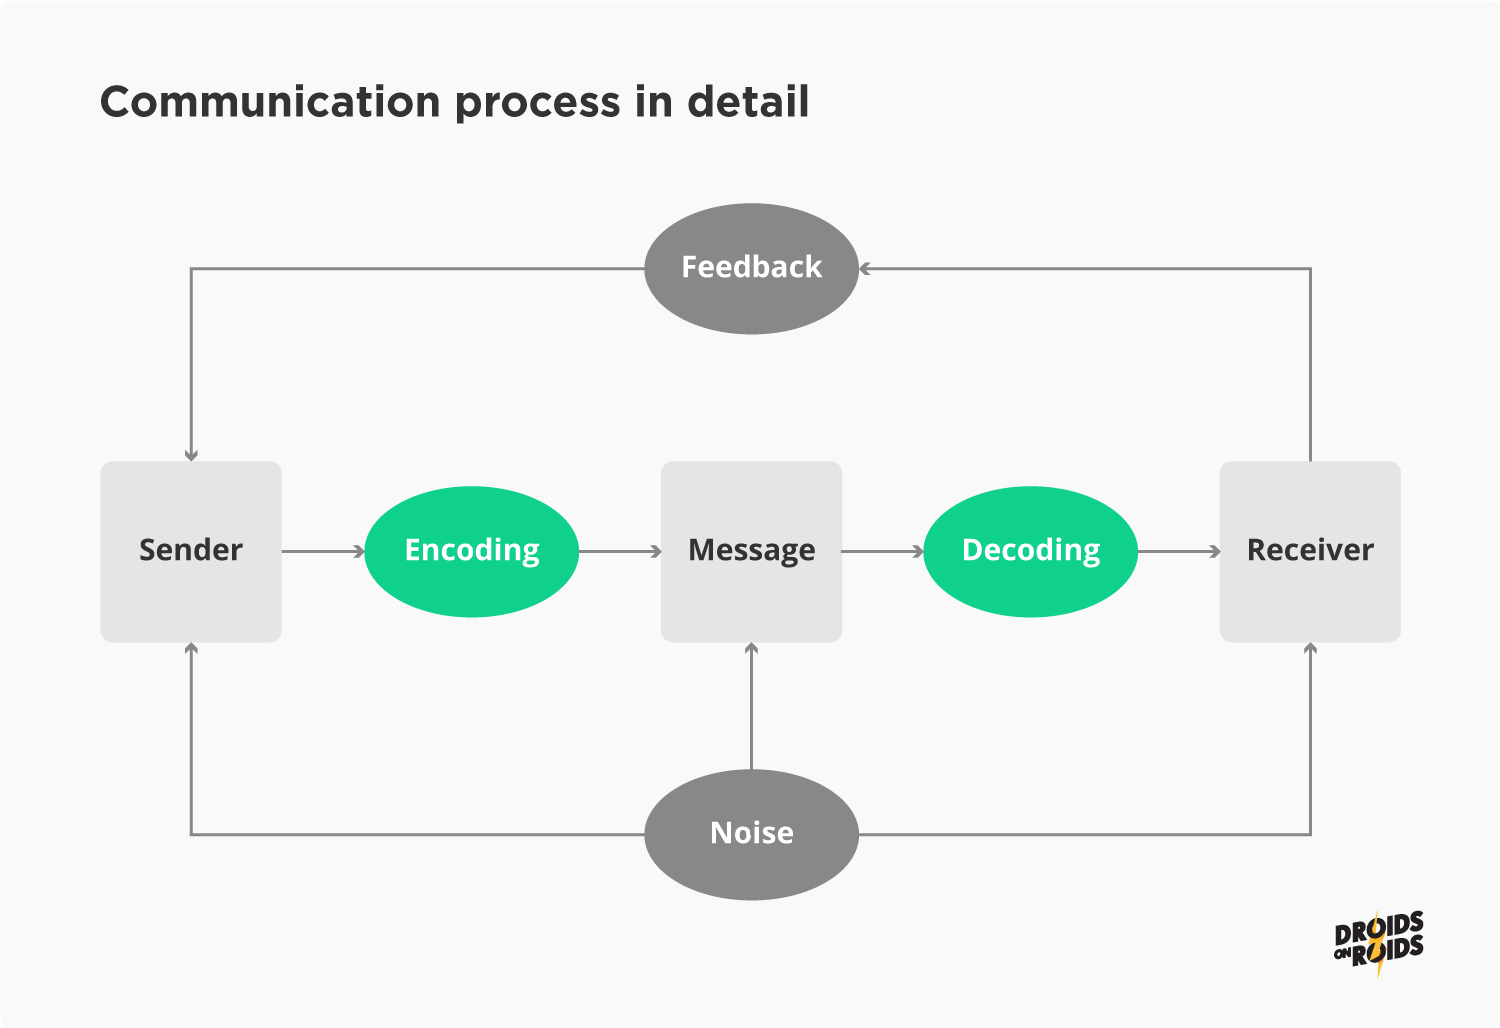 Communication process in detail - communication model